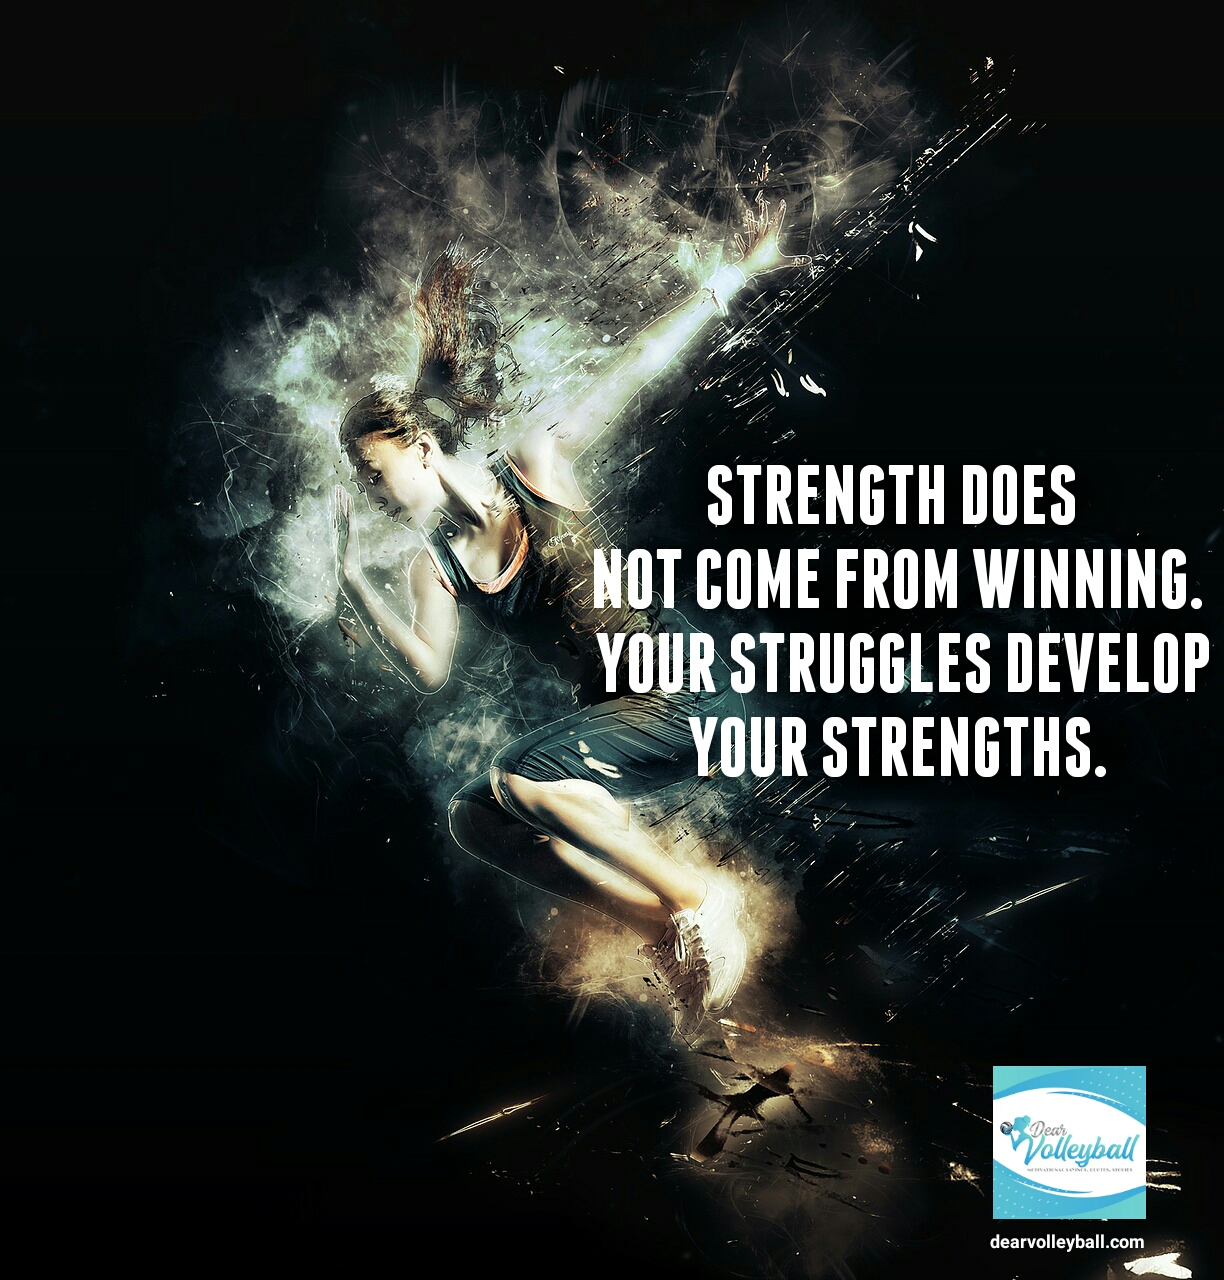 Strength doesnt come from winning. Your struggles develop your strength and other motivating quotes on DearVolleyball.com